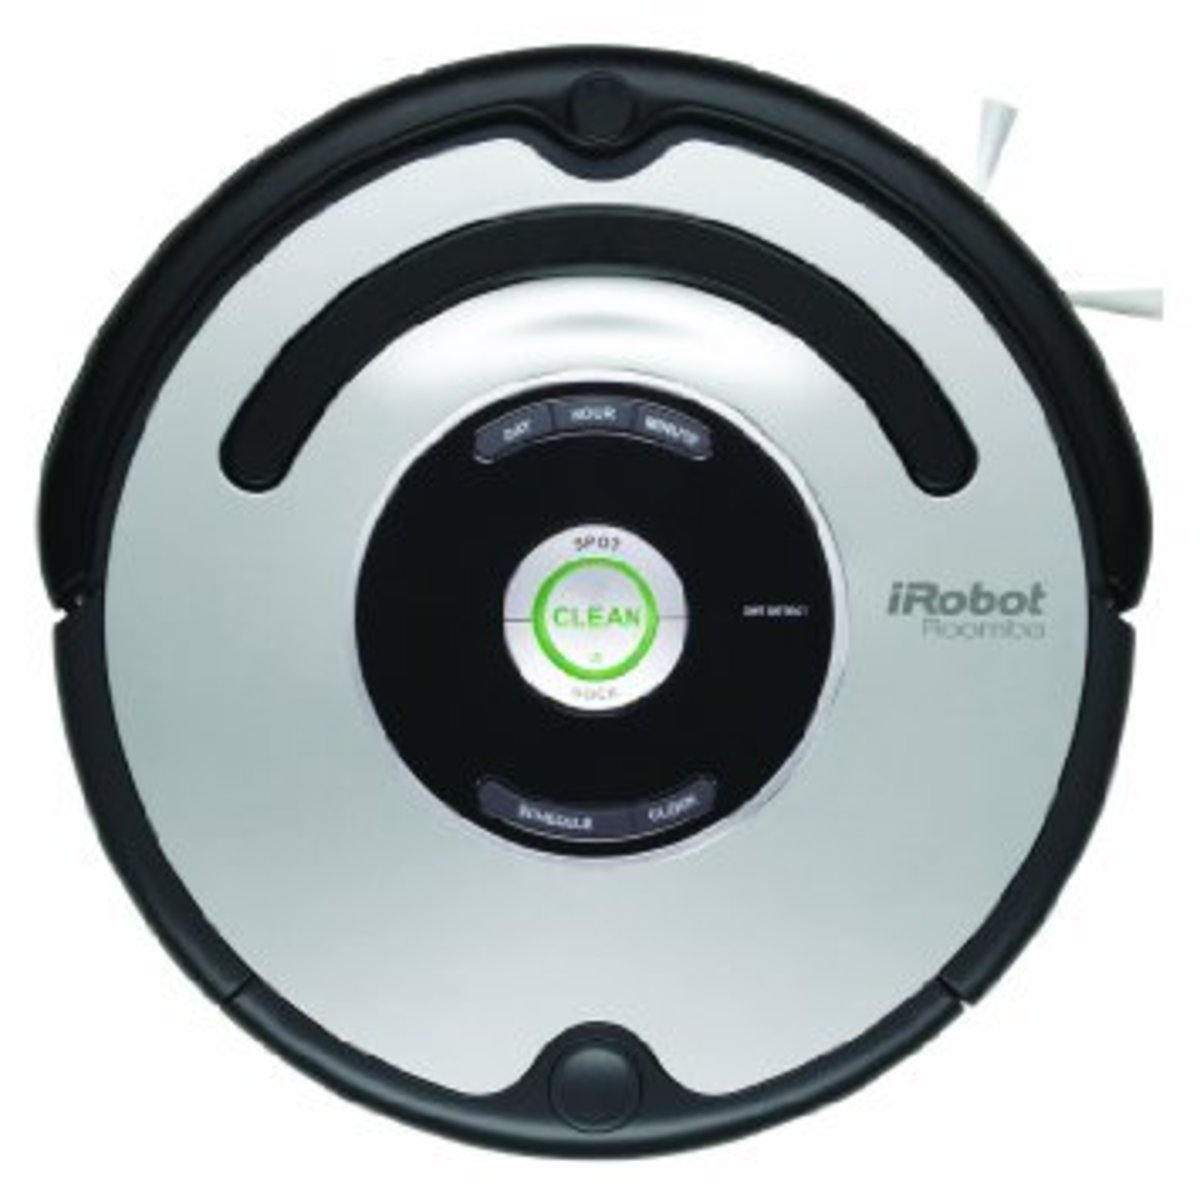 My Sweet Roomba!